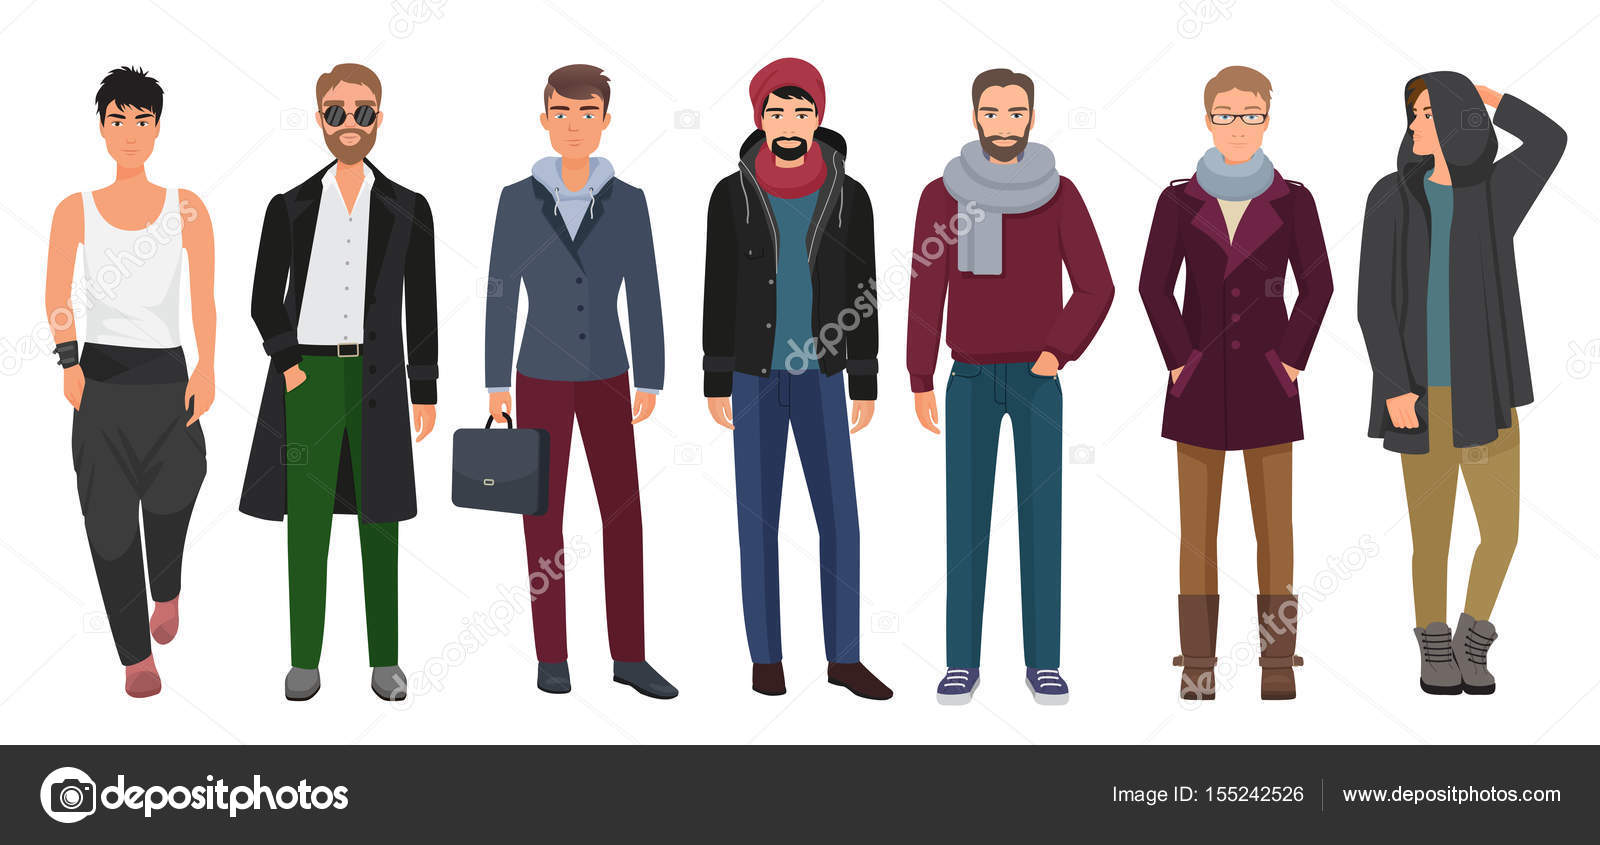 Cartoon Characters Guys : Handsome and stylish men set. cartoon guys male characters in trendy